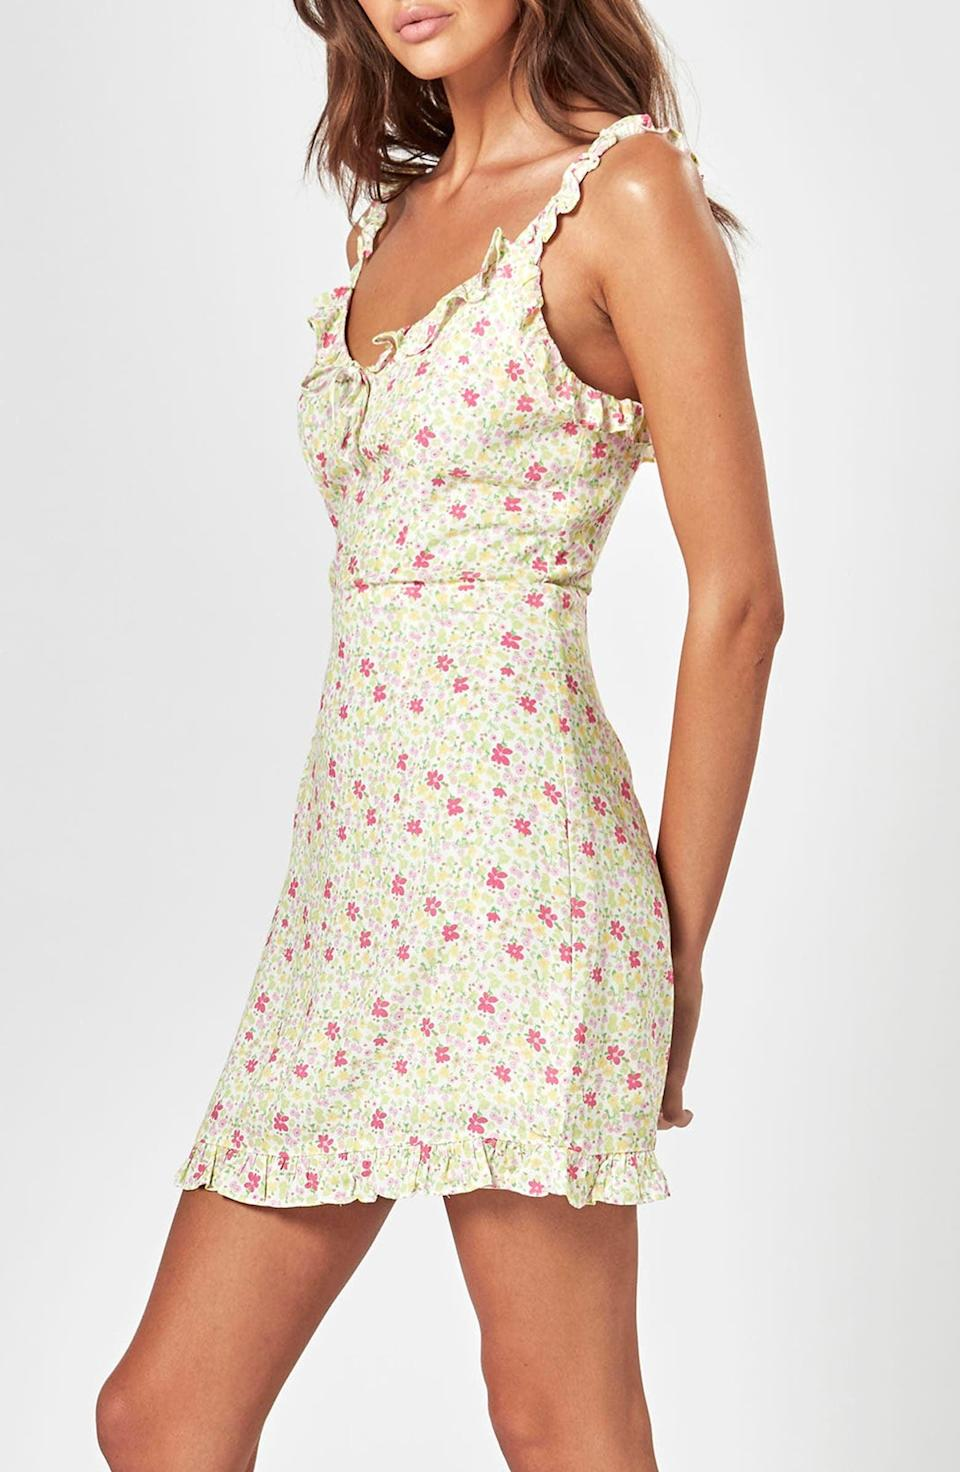 <p>This <span>Charlie Holiday Fable Floral Minidress</span> ($109) looks romantic and sweet thanks to the print, ruffle details, and refined bodice.</p>